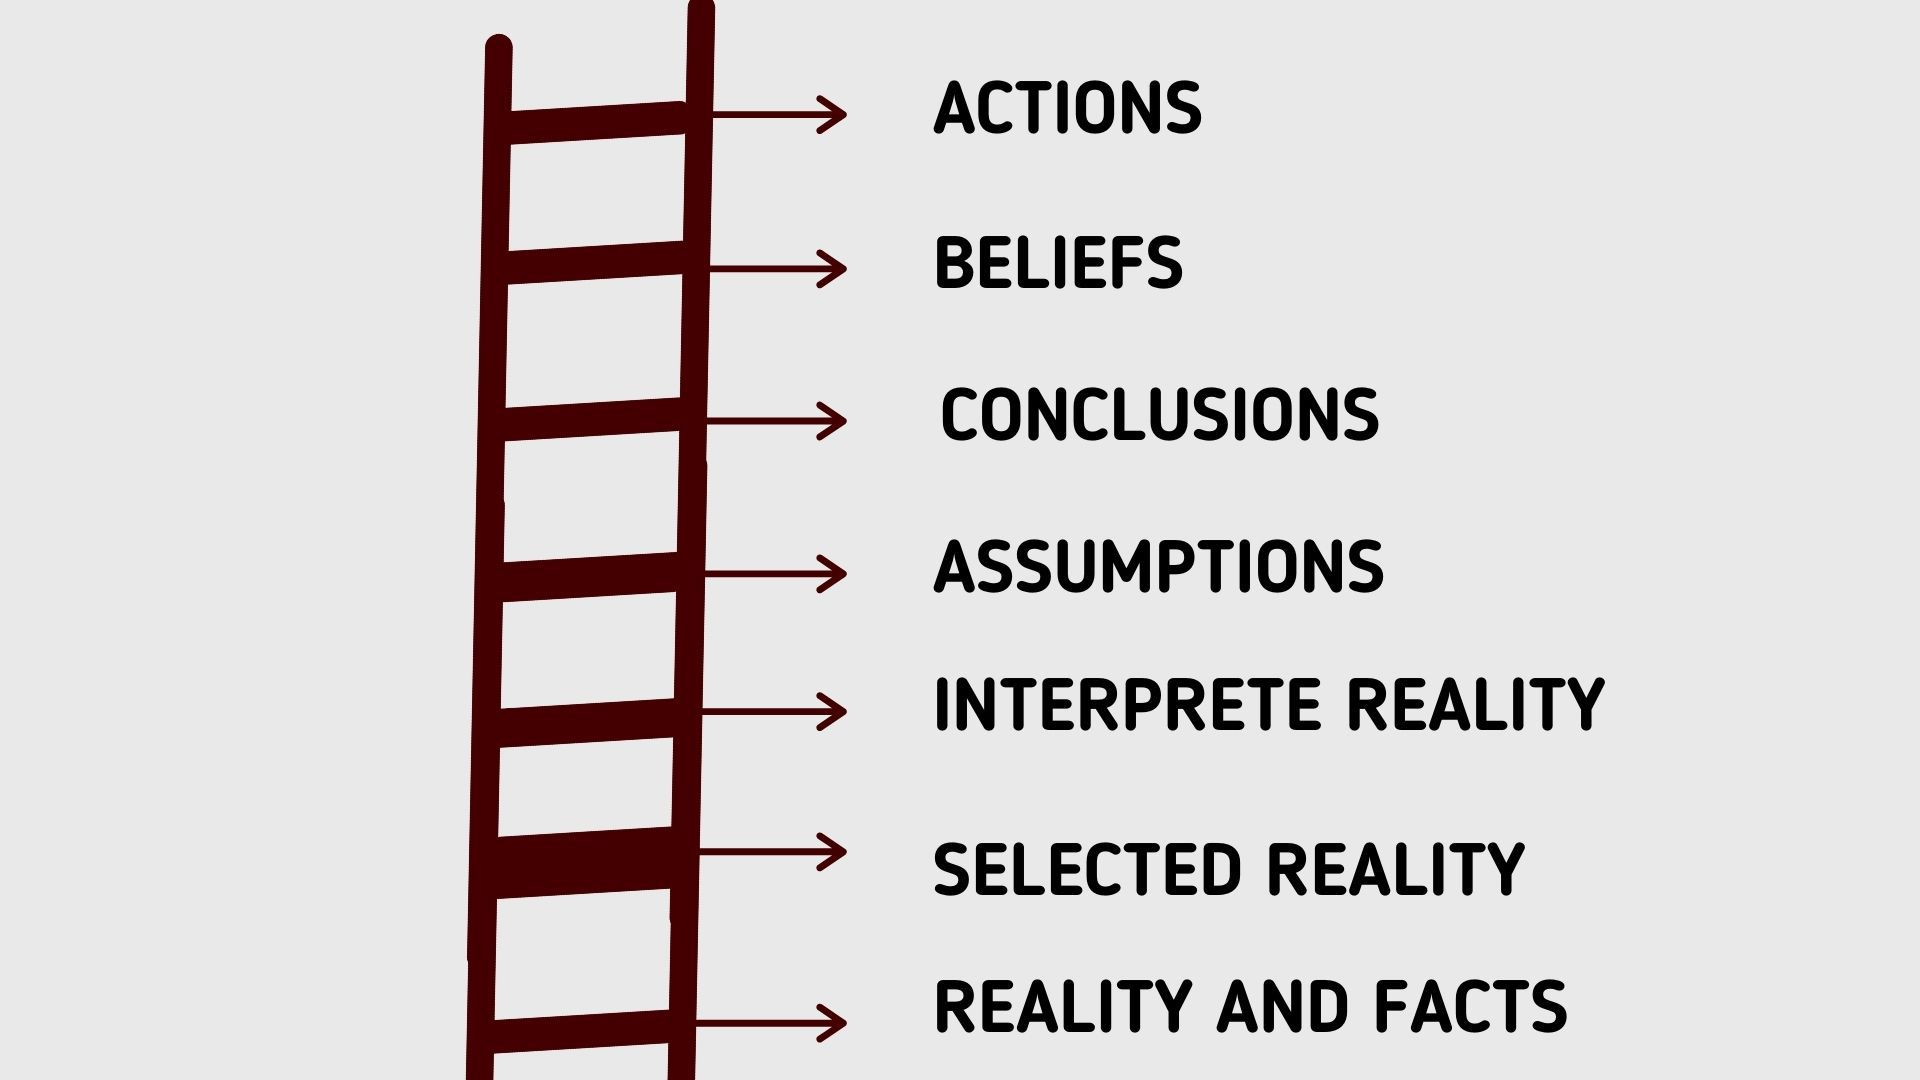 Ladder of Inference steps and proceeds